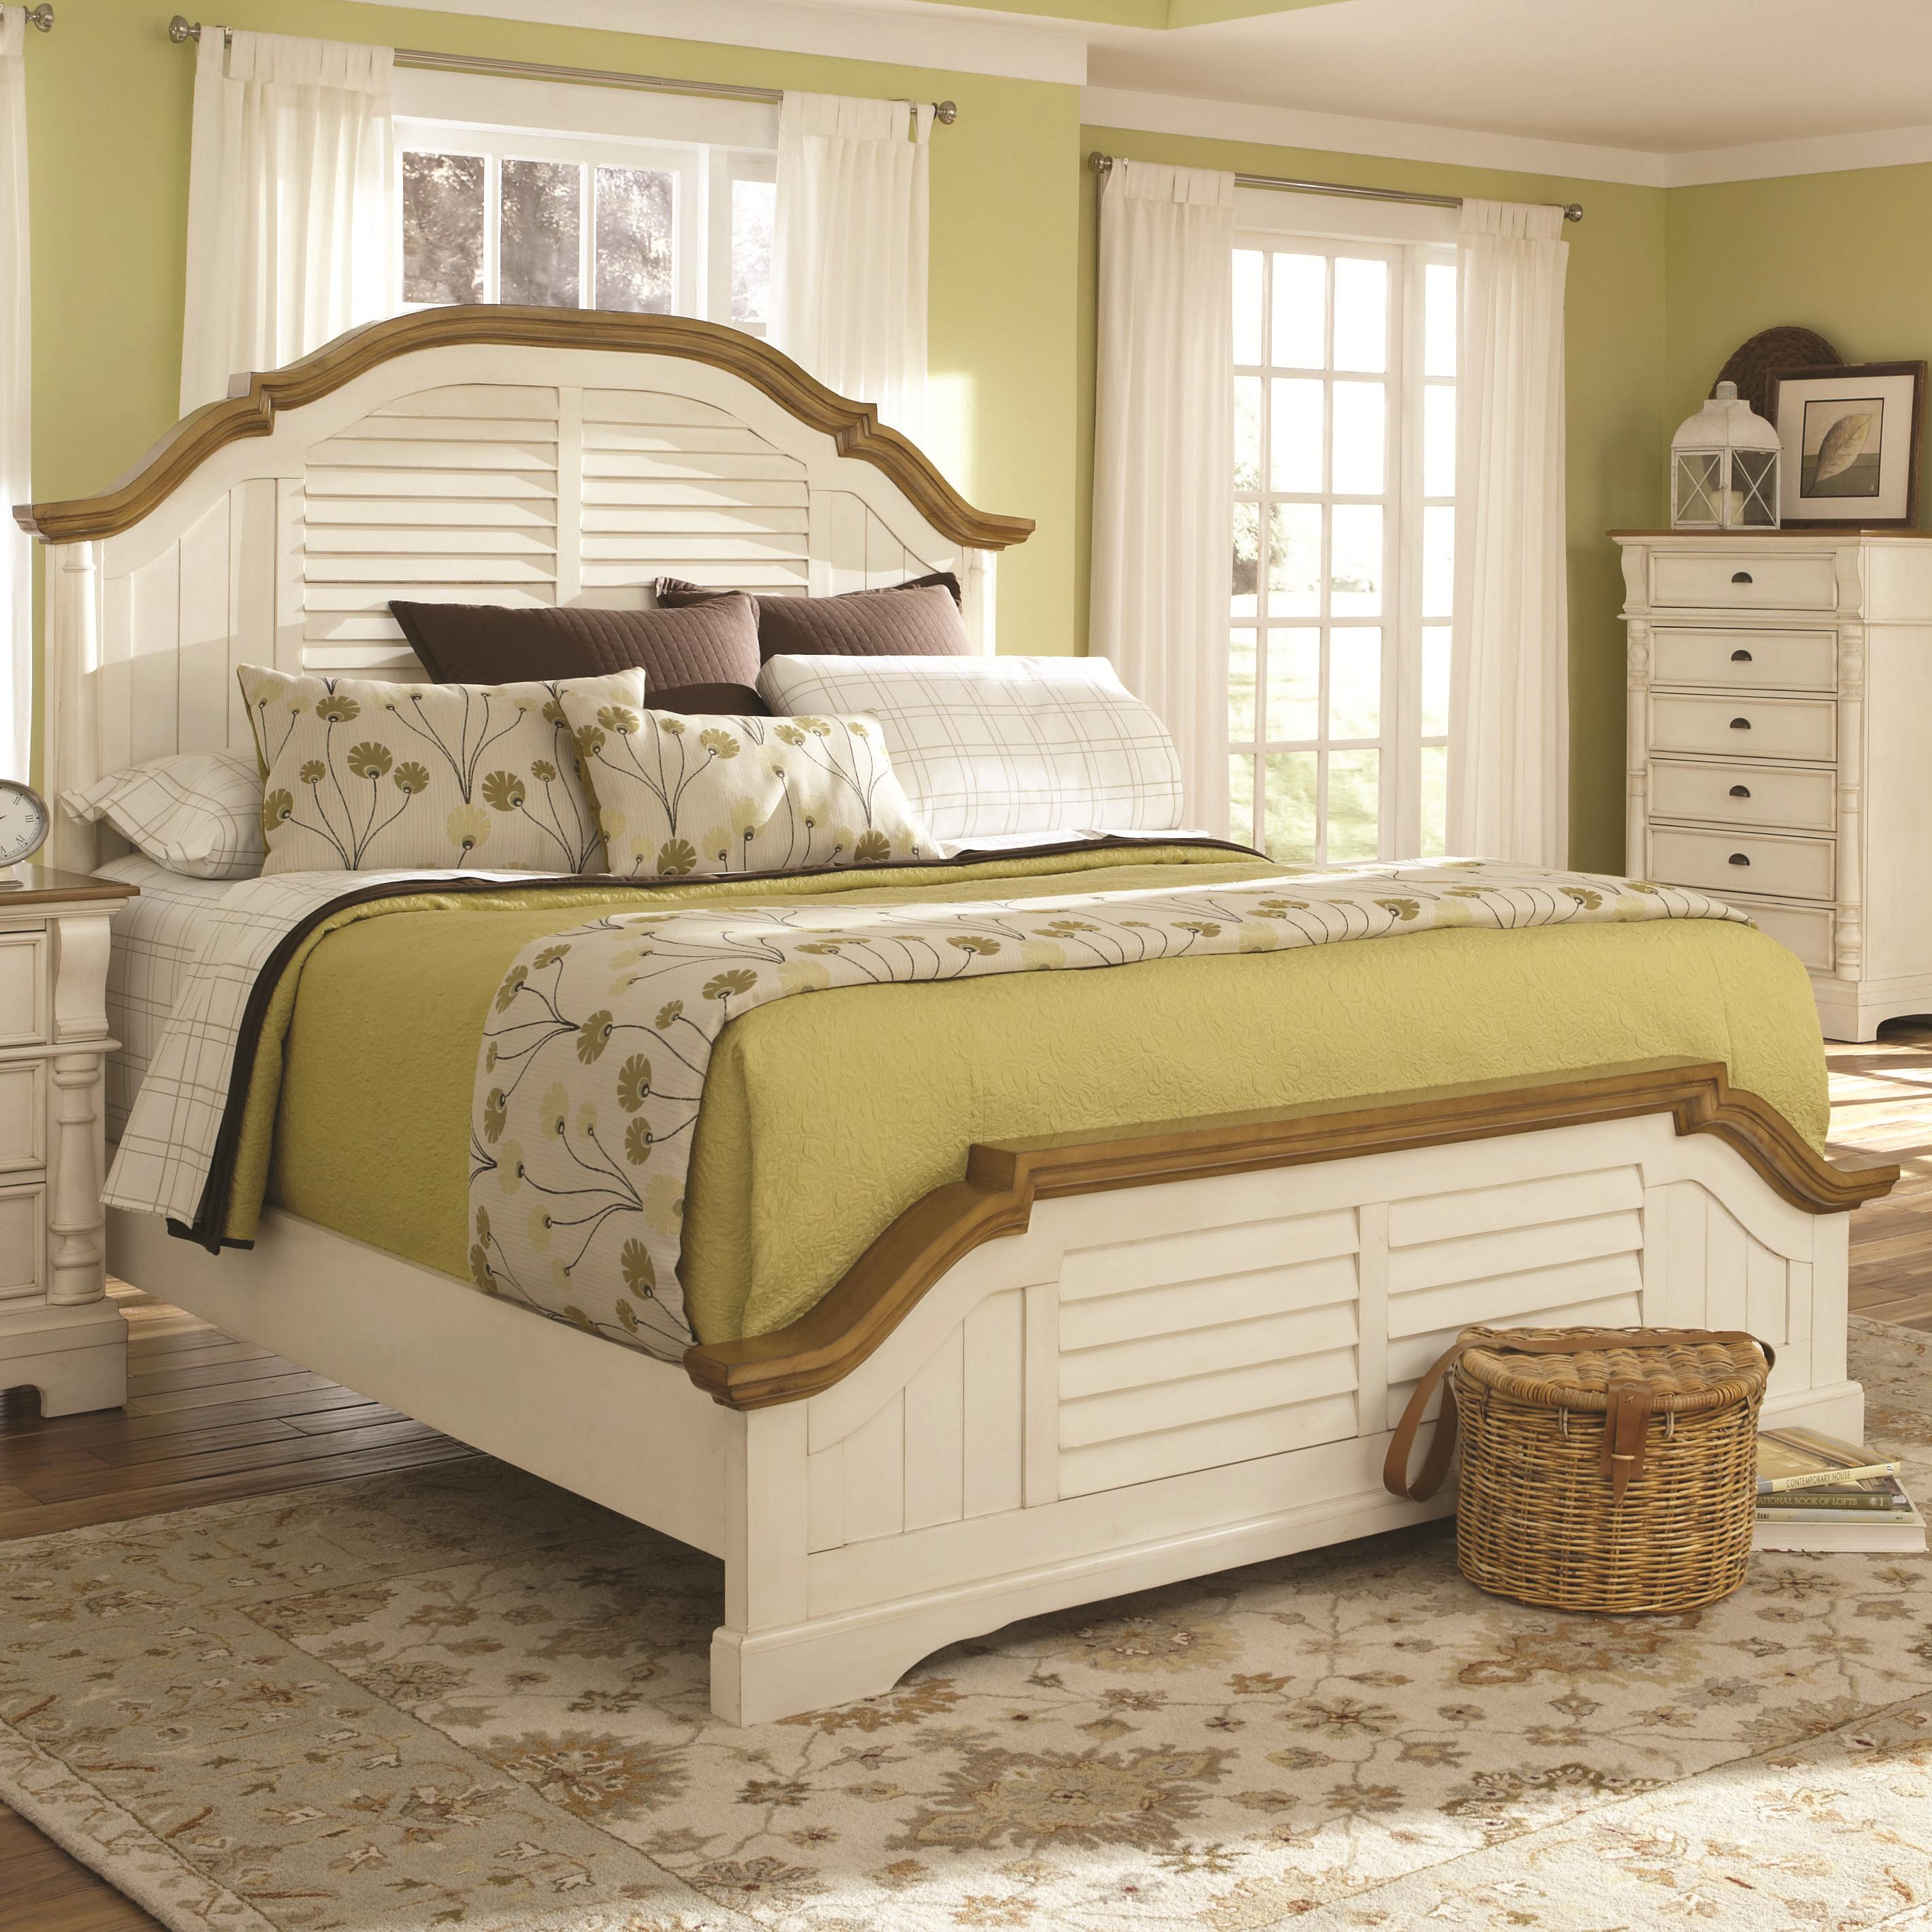 Cal king 4pc bed set, oleta (bed, dresser, nightstand, mirror)